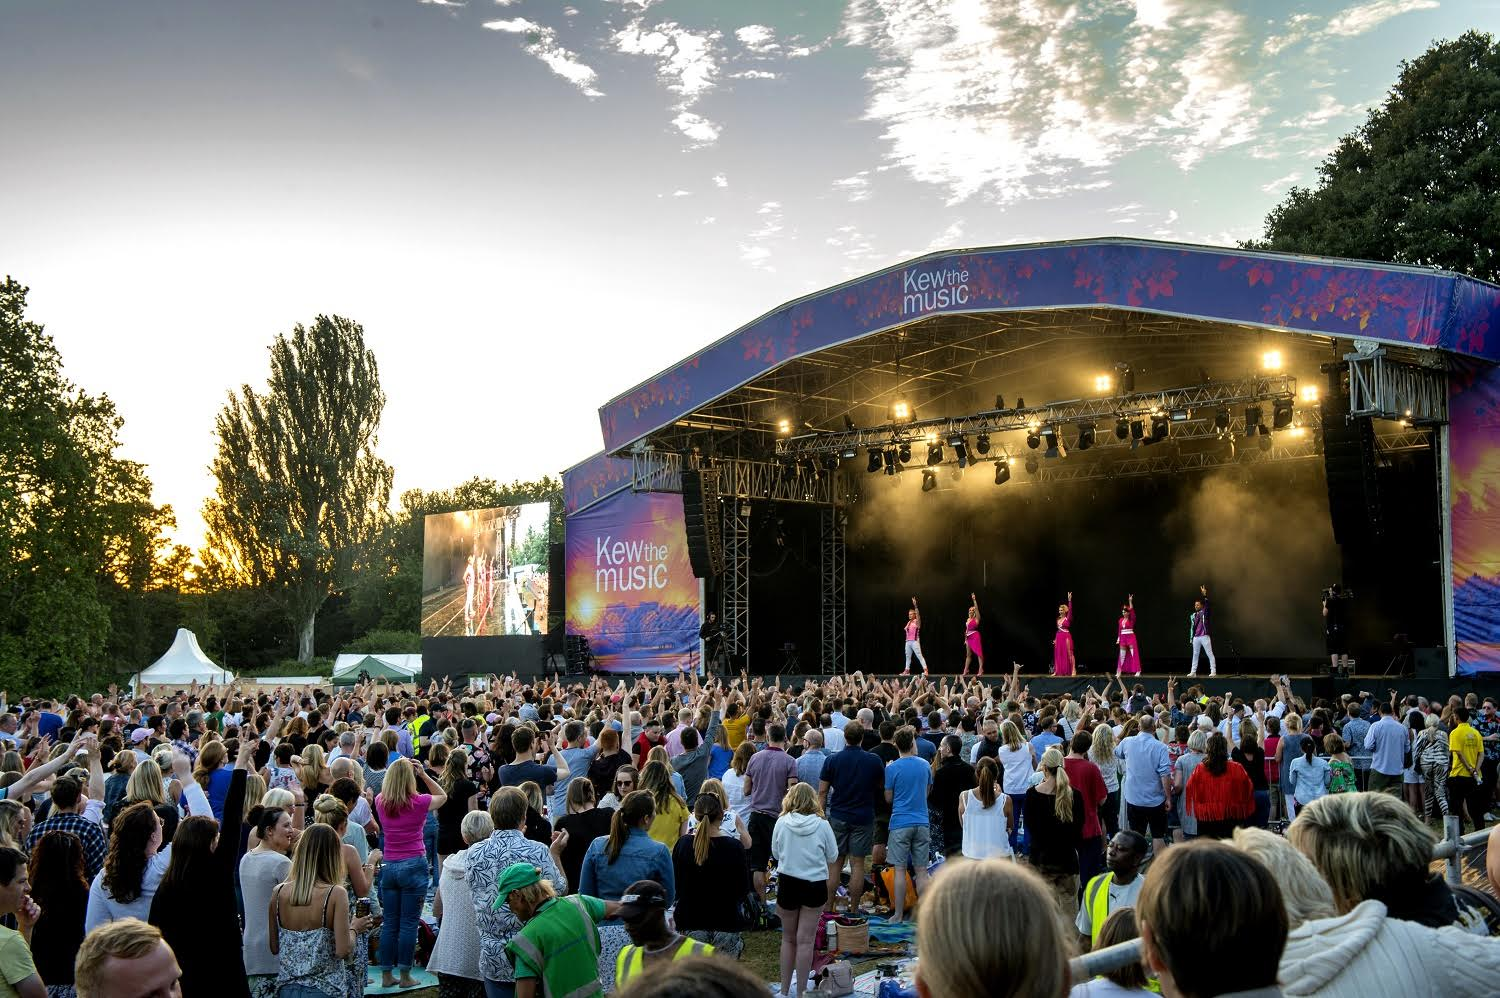 "Jess Glynne, Jools Holland, Craig David, Beverley Knight, Billy Ocean, Garbage, Rick Astley plus even MORE artists are all appearing at  Kew the Music  this month at, yep you guessed it, Kew. These ""picnic concerts"" are on from the 9th to the 14th July and tickets are available from £30 but vary depending on ticket type. Attendees are encouraged to take a seat on the grass (or on a chair if you bring one) and sing away your evening soaking up the music and the atmosphere while tucking into a yummy picnic hamper which are available to buy via the website and are put together in association with St John's Wood based delicatessen Panzer' too. If you don't fancy that then all guests are encouraged to pack your own pork pies and prosecco and curl up on a blanket as the evening draws in sound tracked by one of these fab artists. Glasto is a little too much for some people and this is the perfect London summer evening activity for live music but your own comfy bed guaranteed at the end of it all!   Facebook  